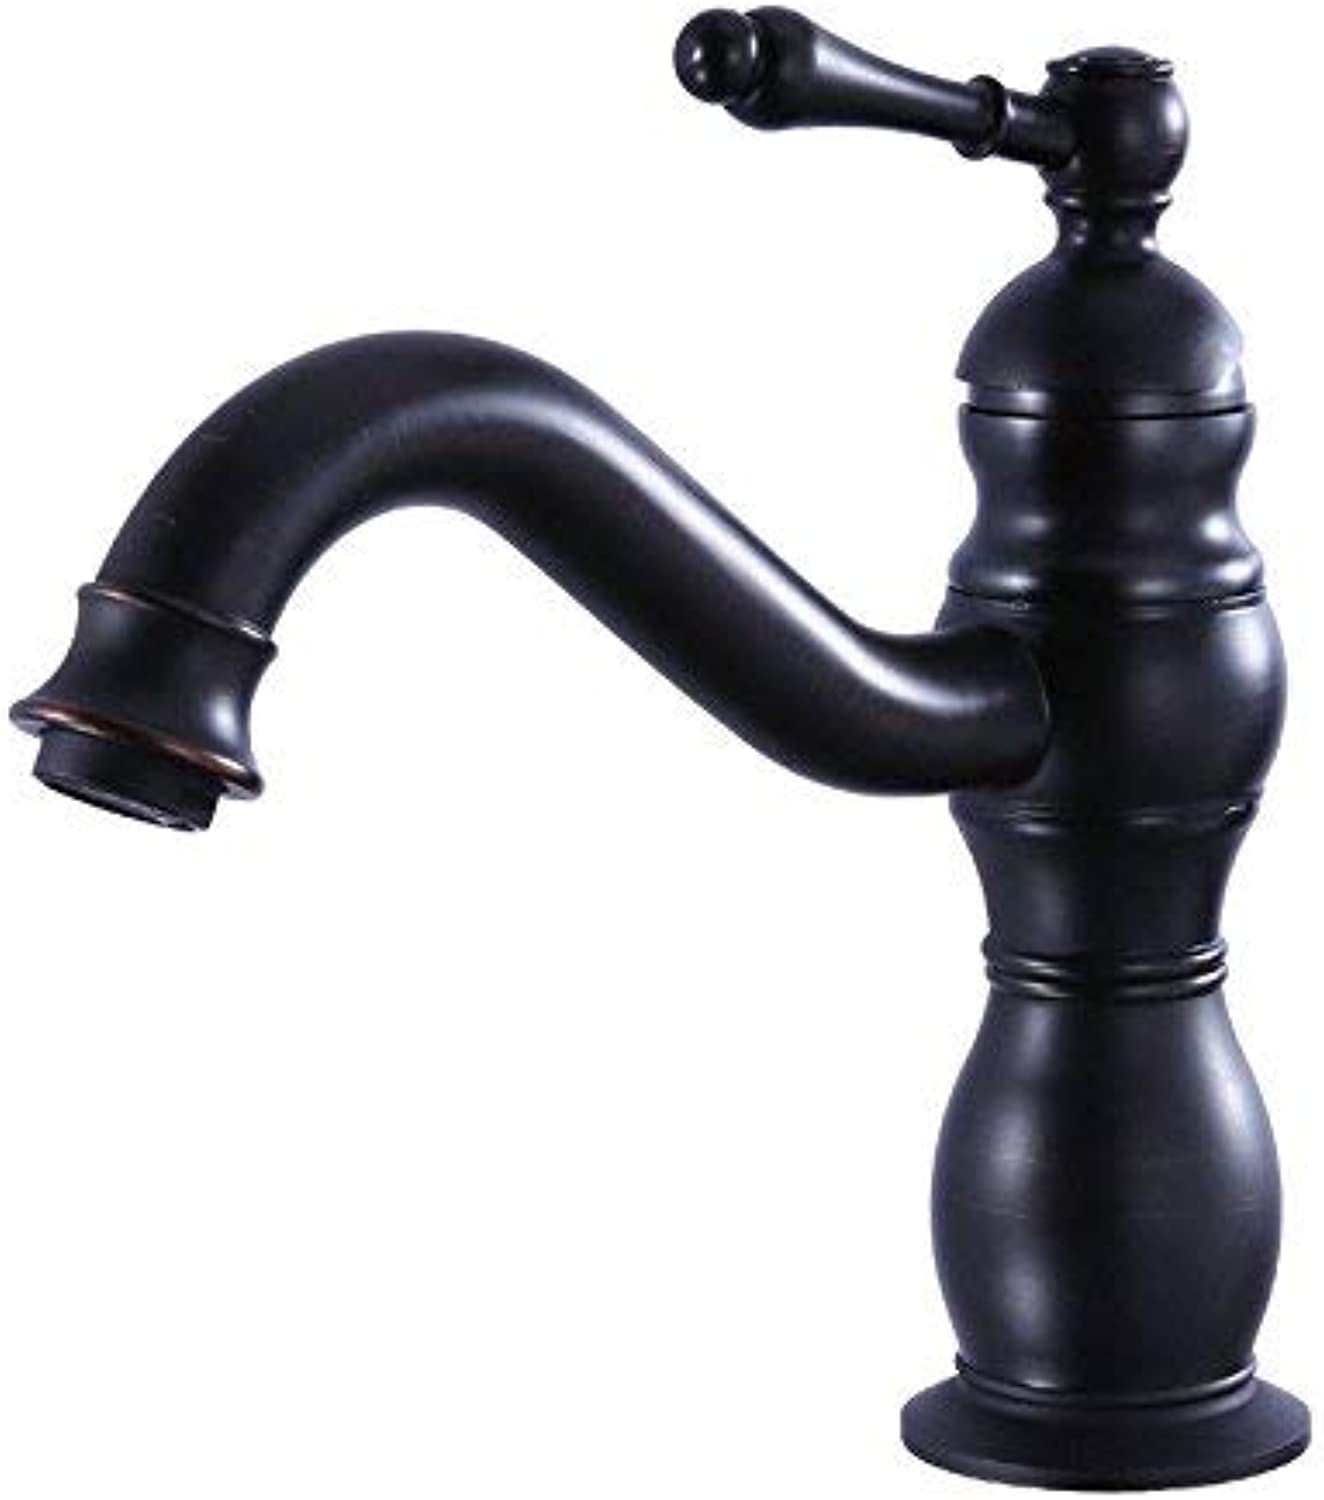 Oudan Bathroom Sink Basin Tap Brass Mixer Tap Washroom Mixer Faucet The Copper Black basin faucet black single hole hot and cold can be redated Kitchen Sink Tap